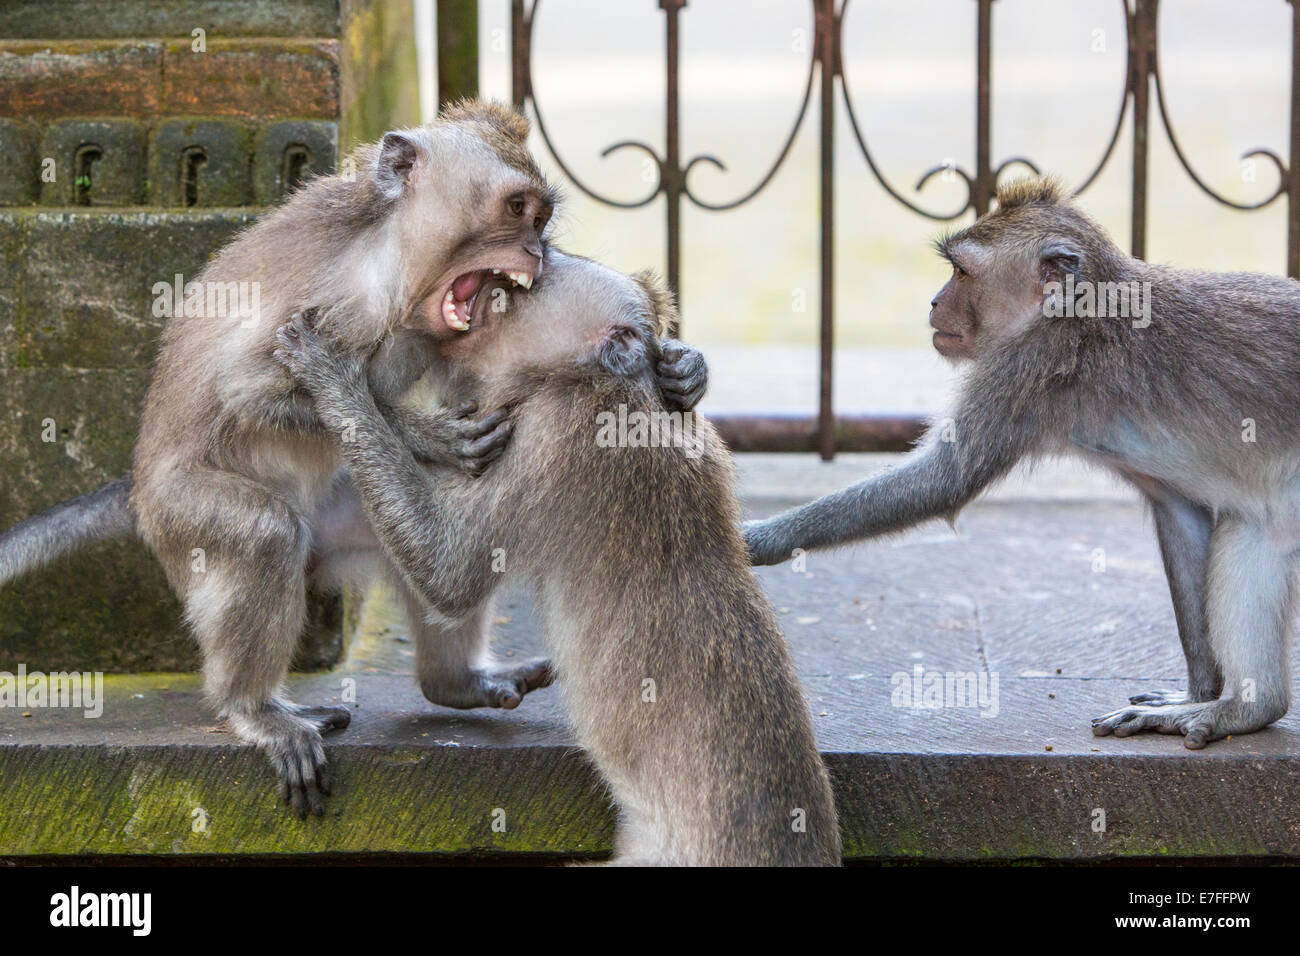 A group of monkeys fight for territory in Monkey Forest, Ubud, Bali, Indonesia. - Stock Image